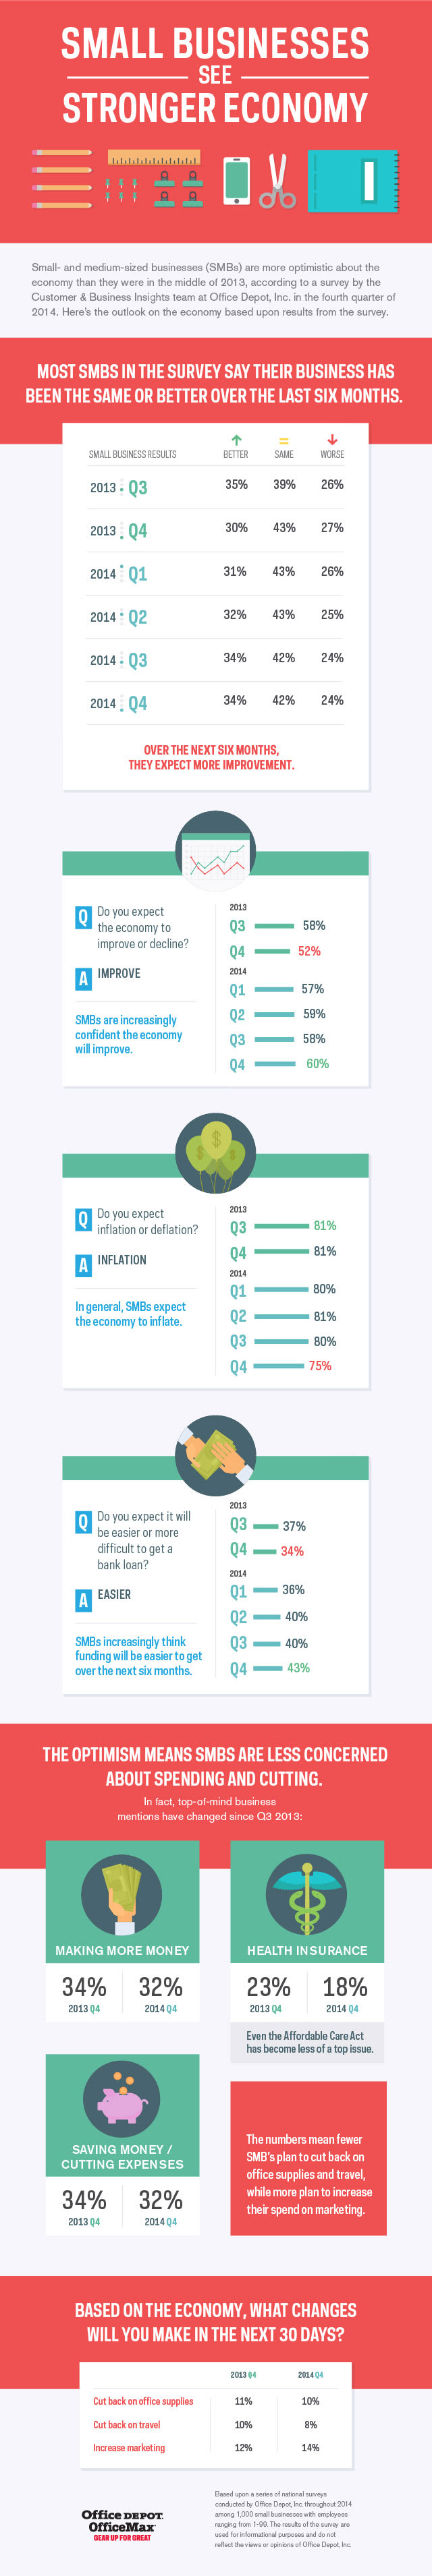 Small Businesses See Stronger Economy [Infographic]